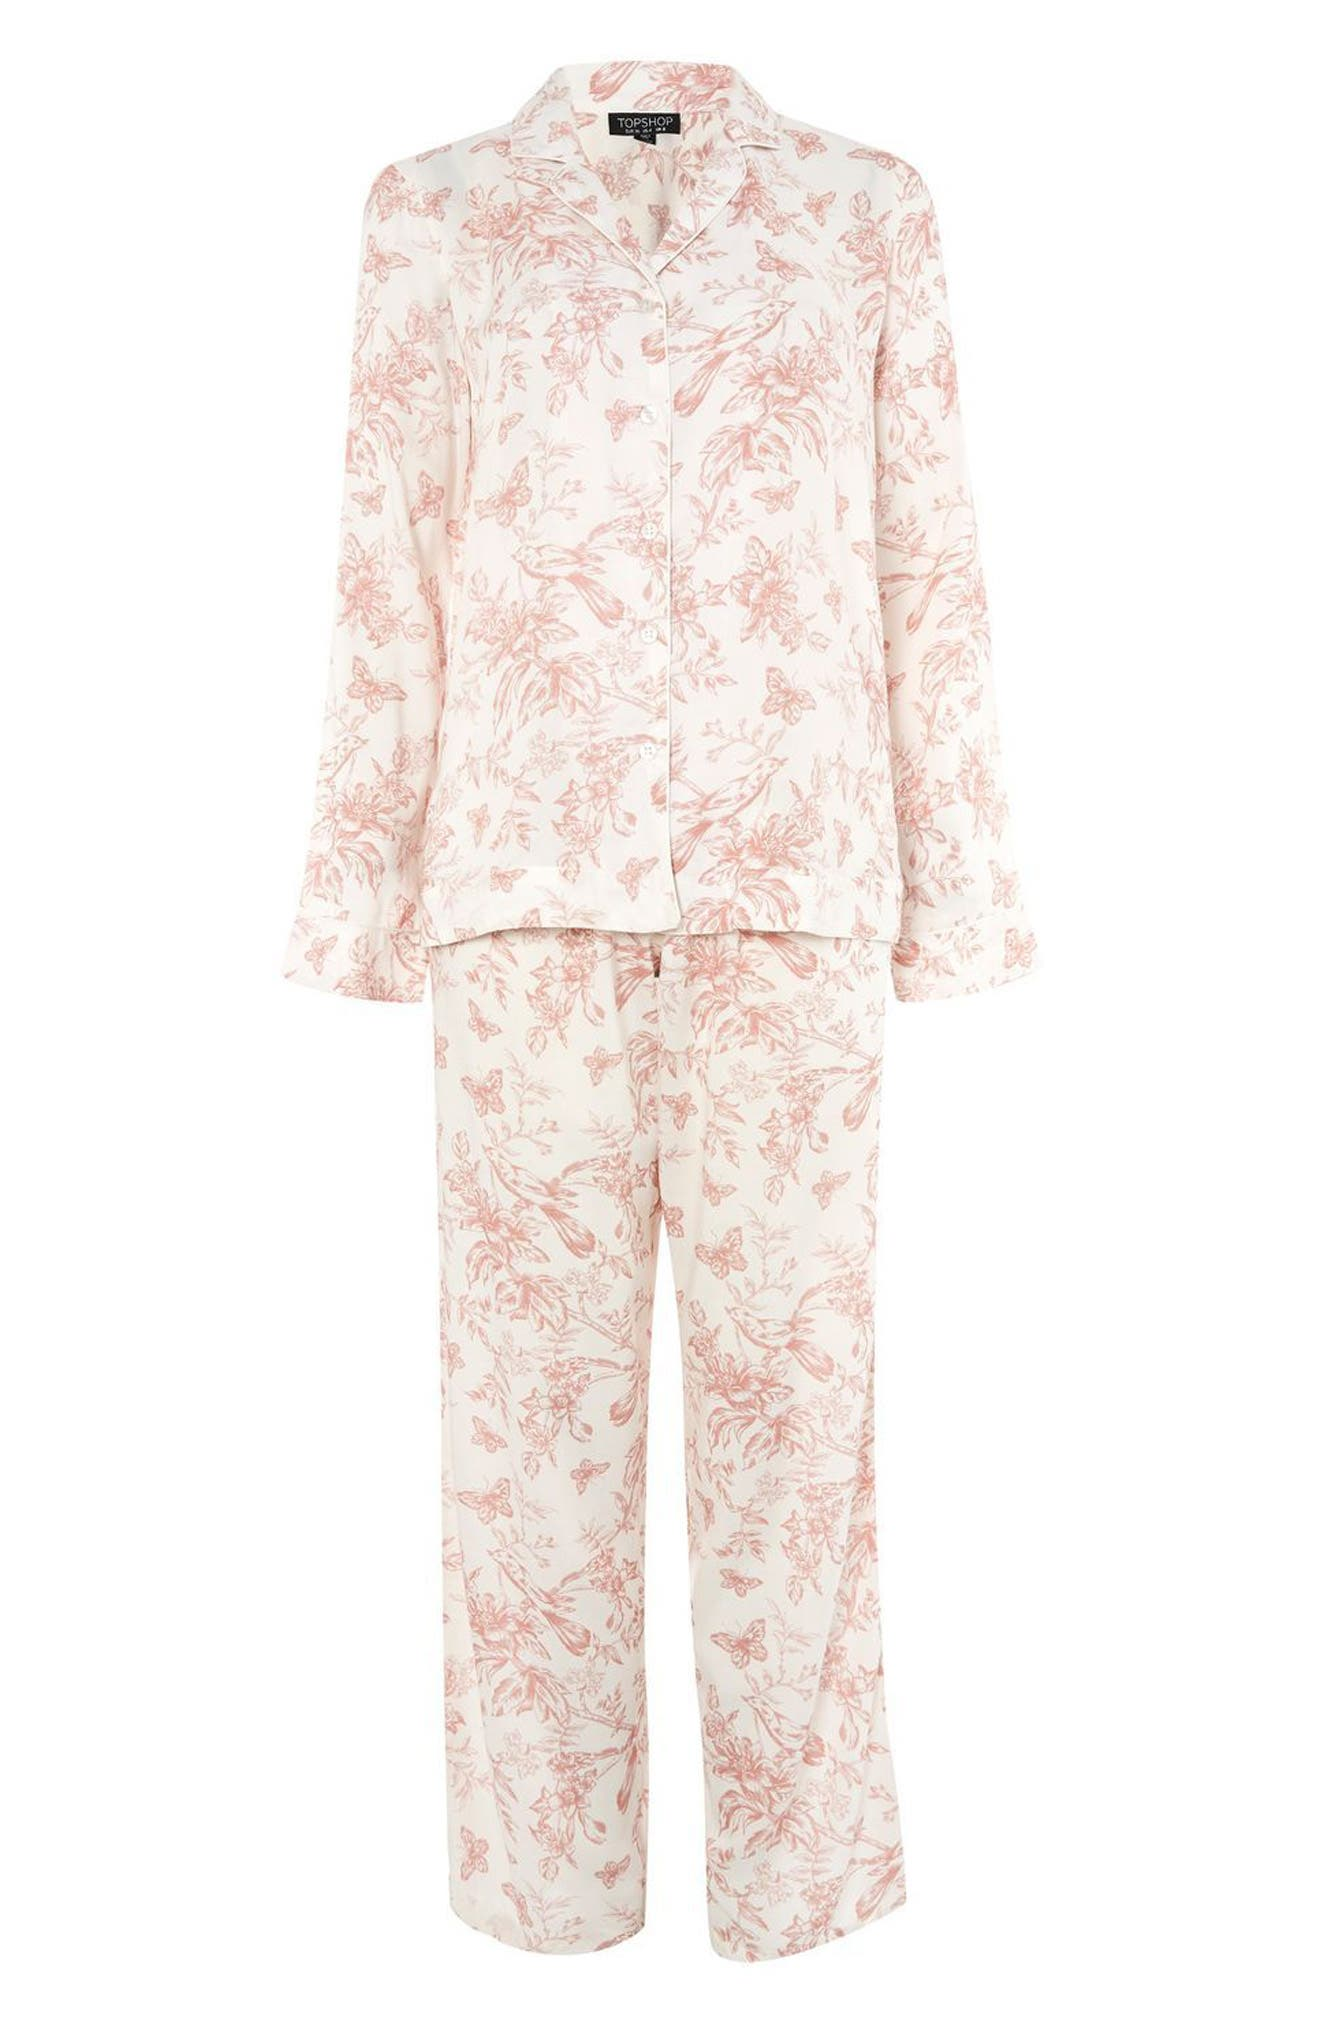 French Floral Pajamas,                             Alternate thumbnail 3, color,